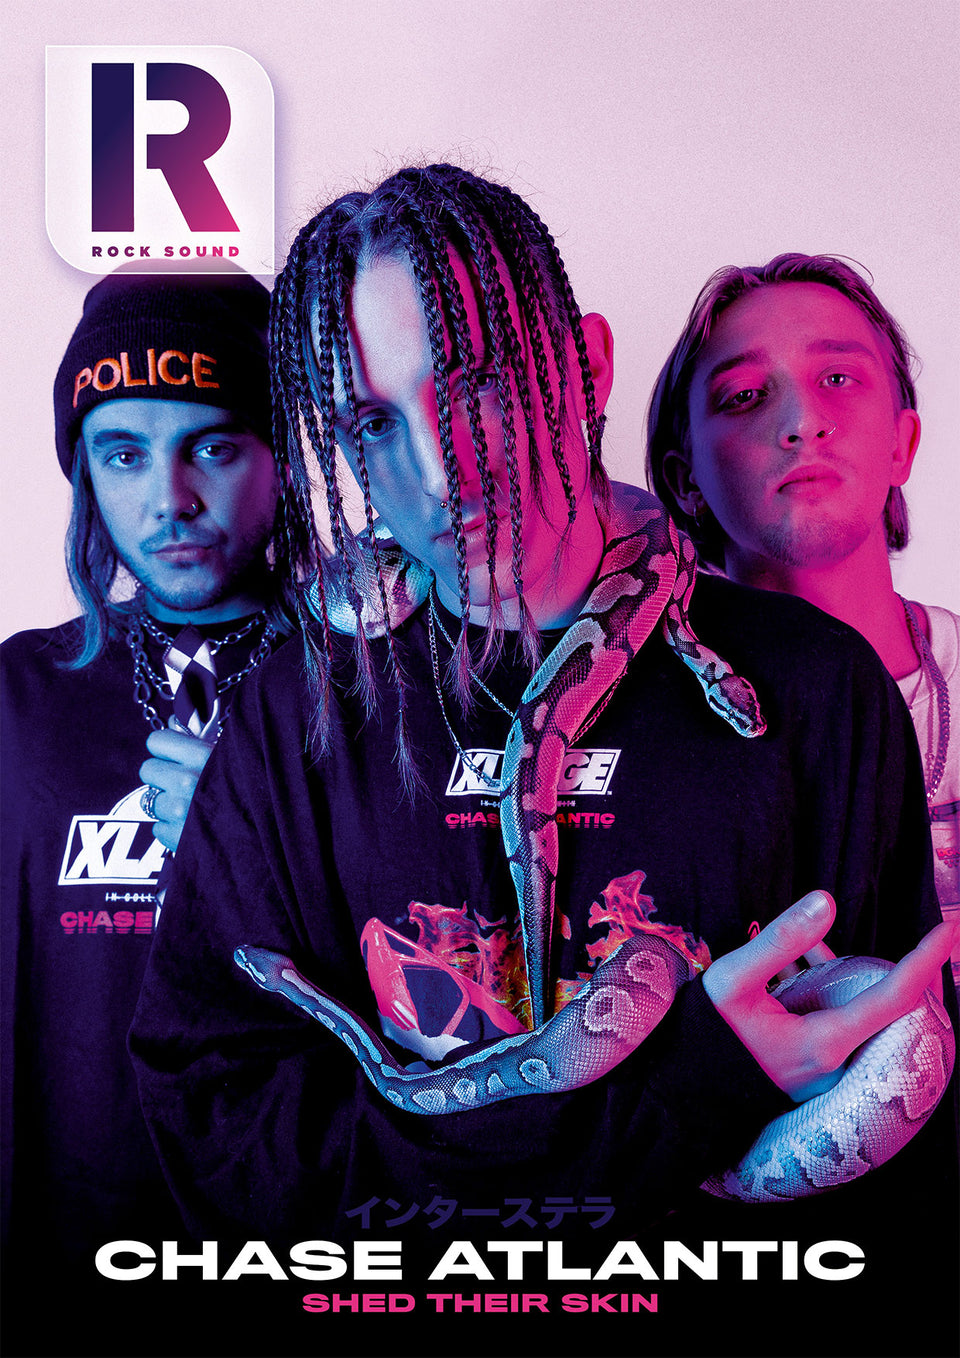 Rock Sound Issue 255 Chase Atlantic - Rock Sound Shop